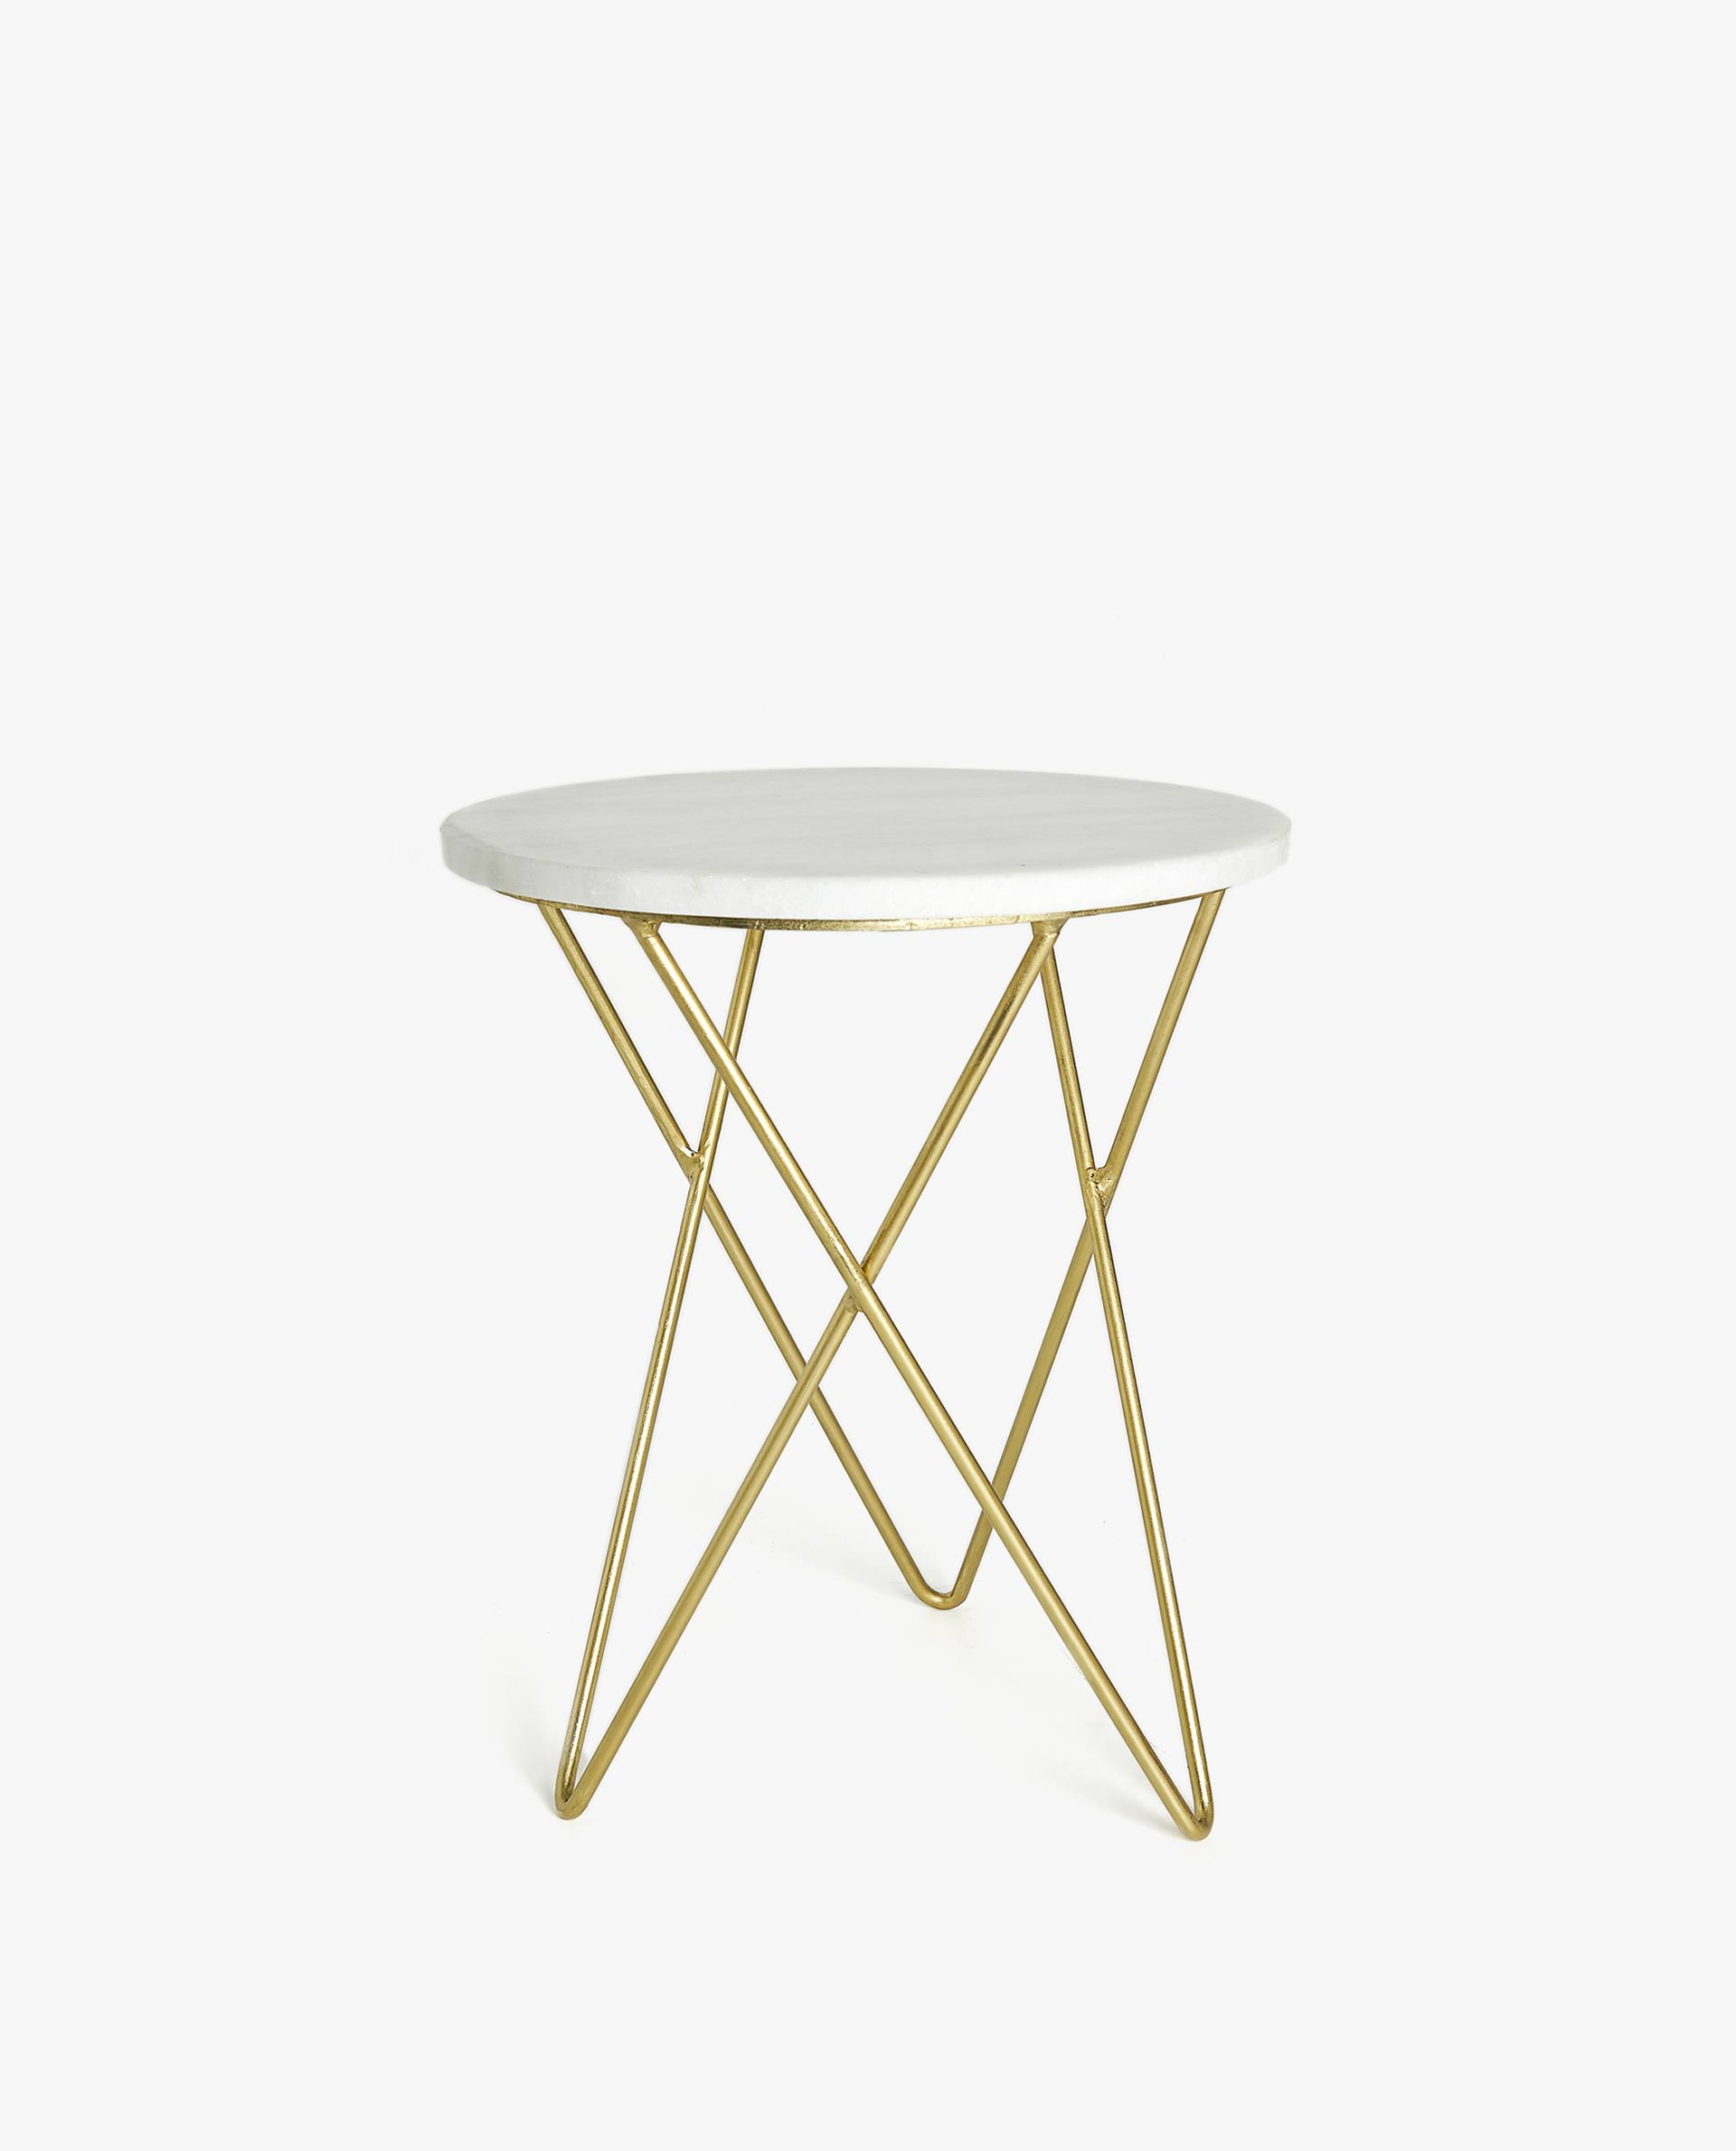 + MARBLE TABLE